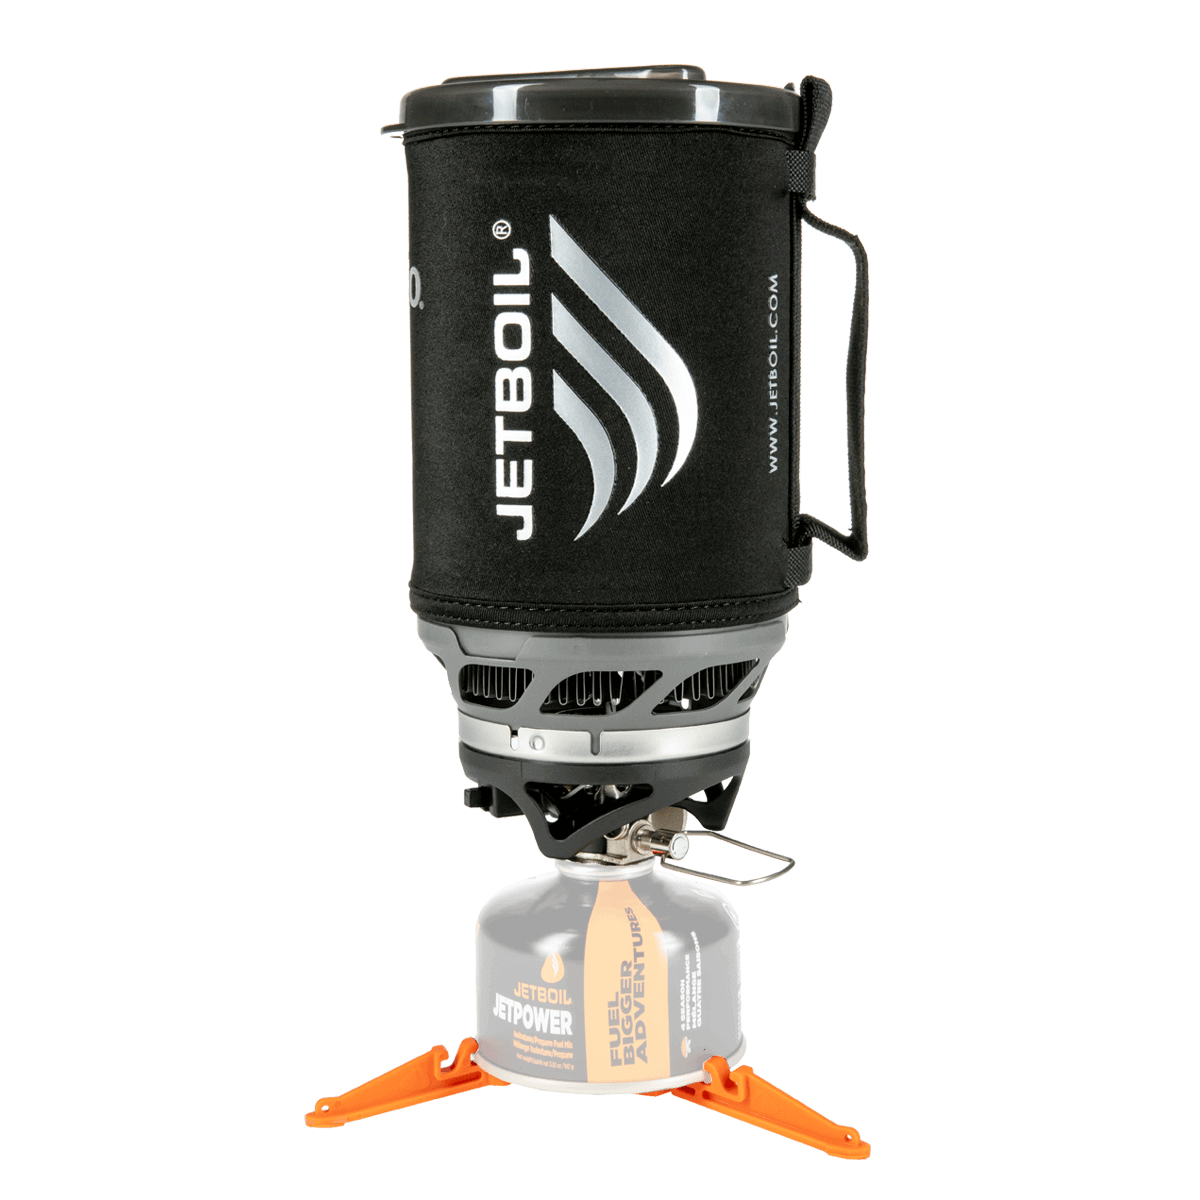 Jetboil SUMO set up with fuel and stabilizer